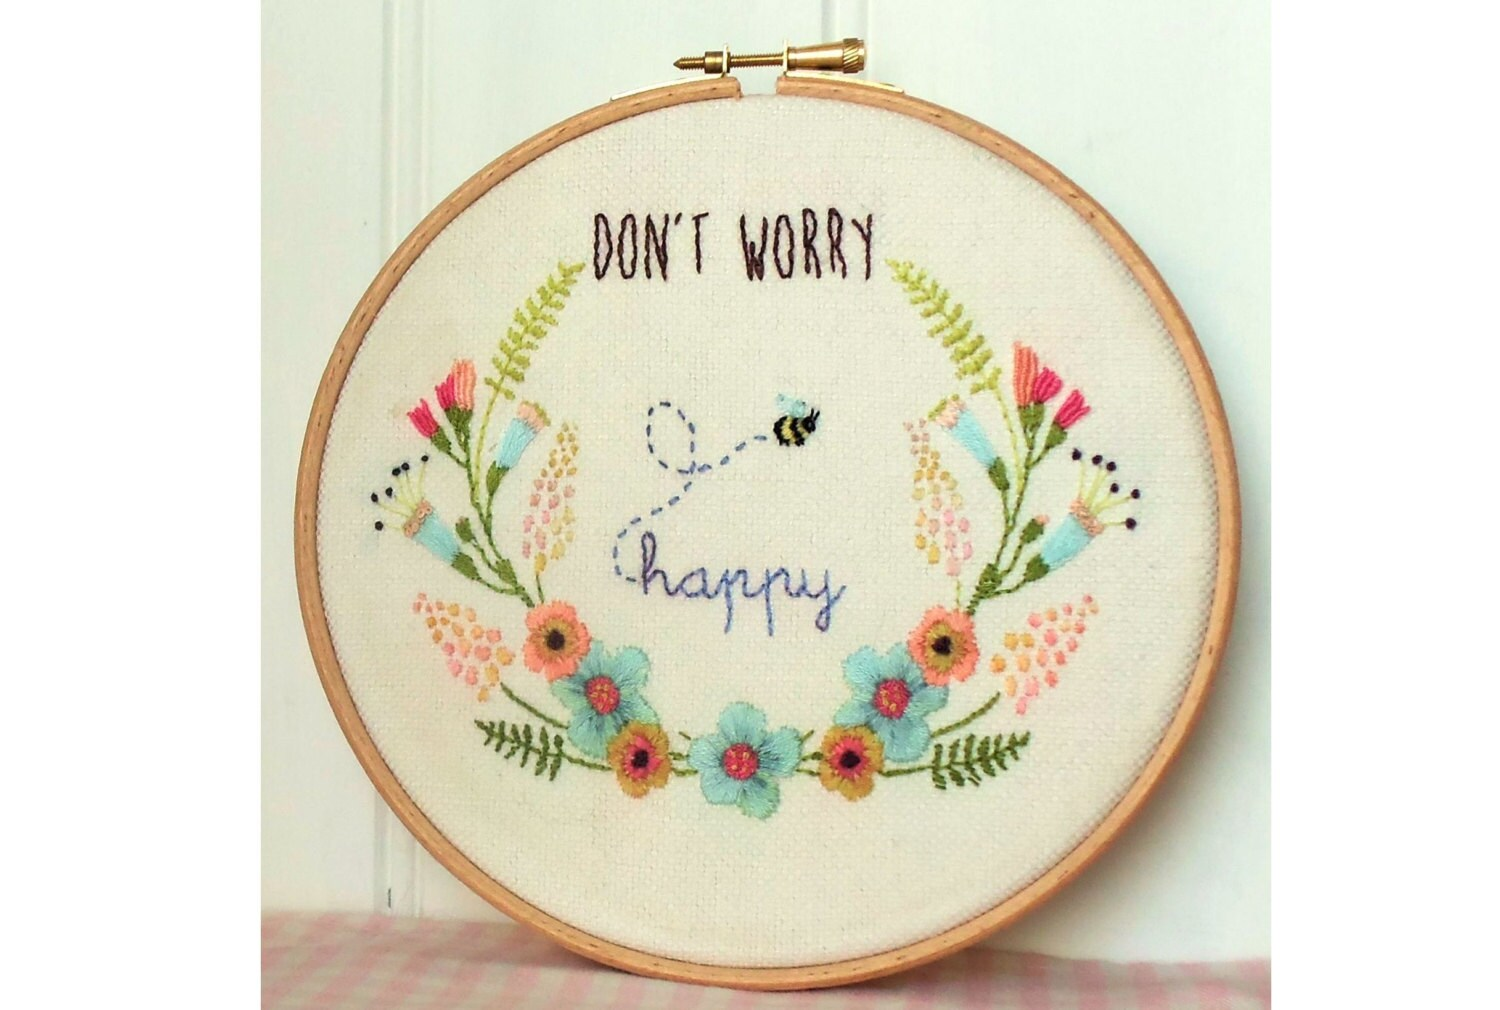 Don t worry be happy embroidery hoop art pattern pdf